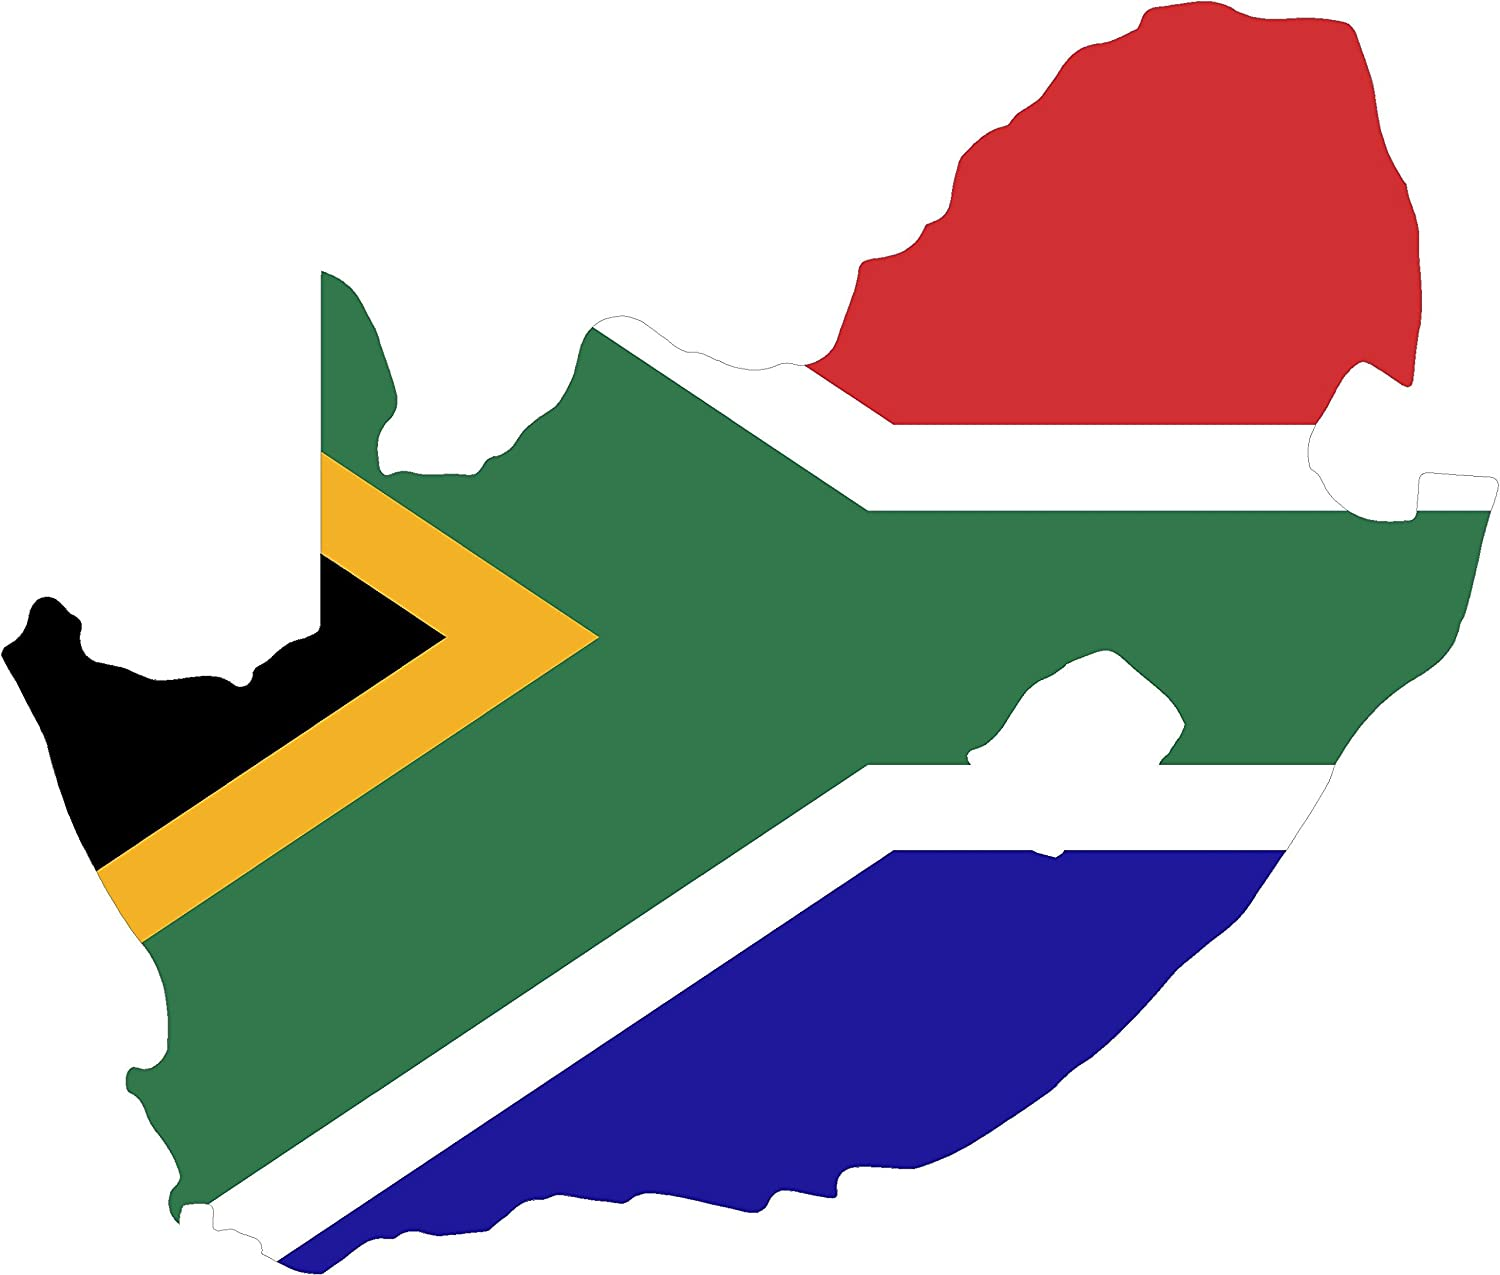 Map with Flag Inside South Africa 4x4.5 Sticker Decal die Cut Vinyl - Made and Shipped in USA